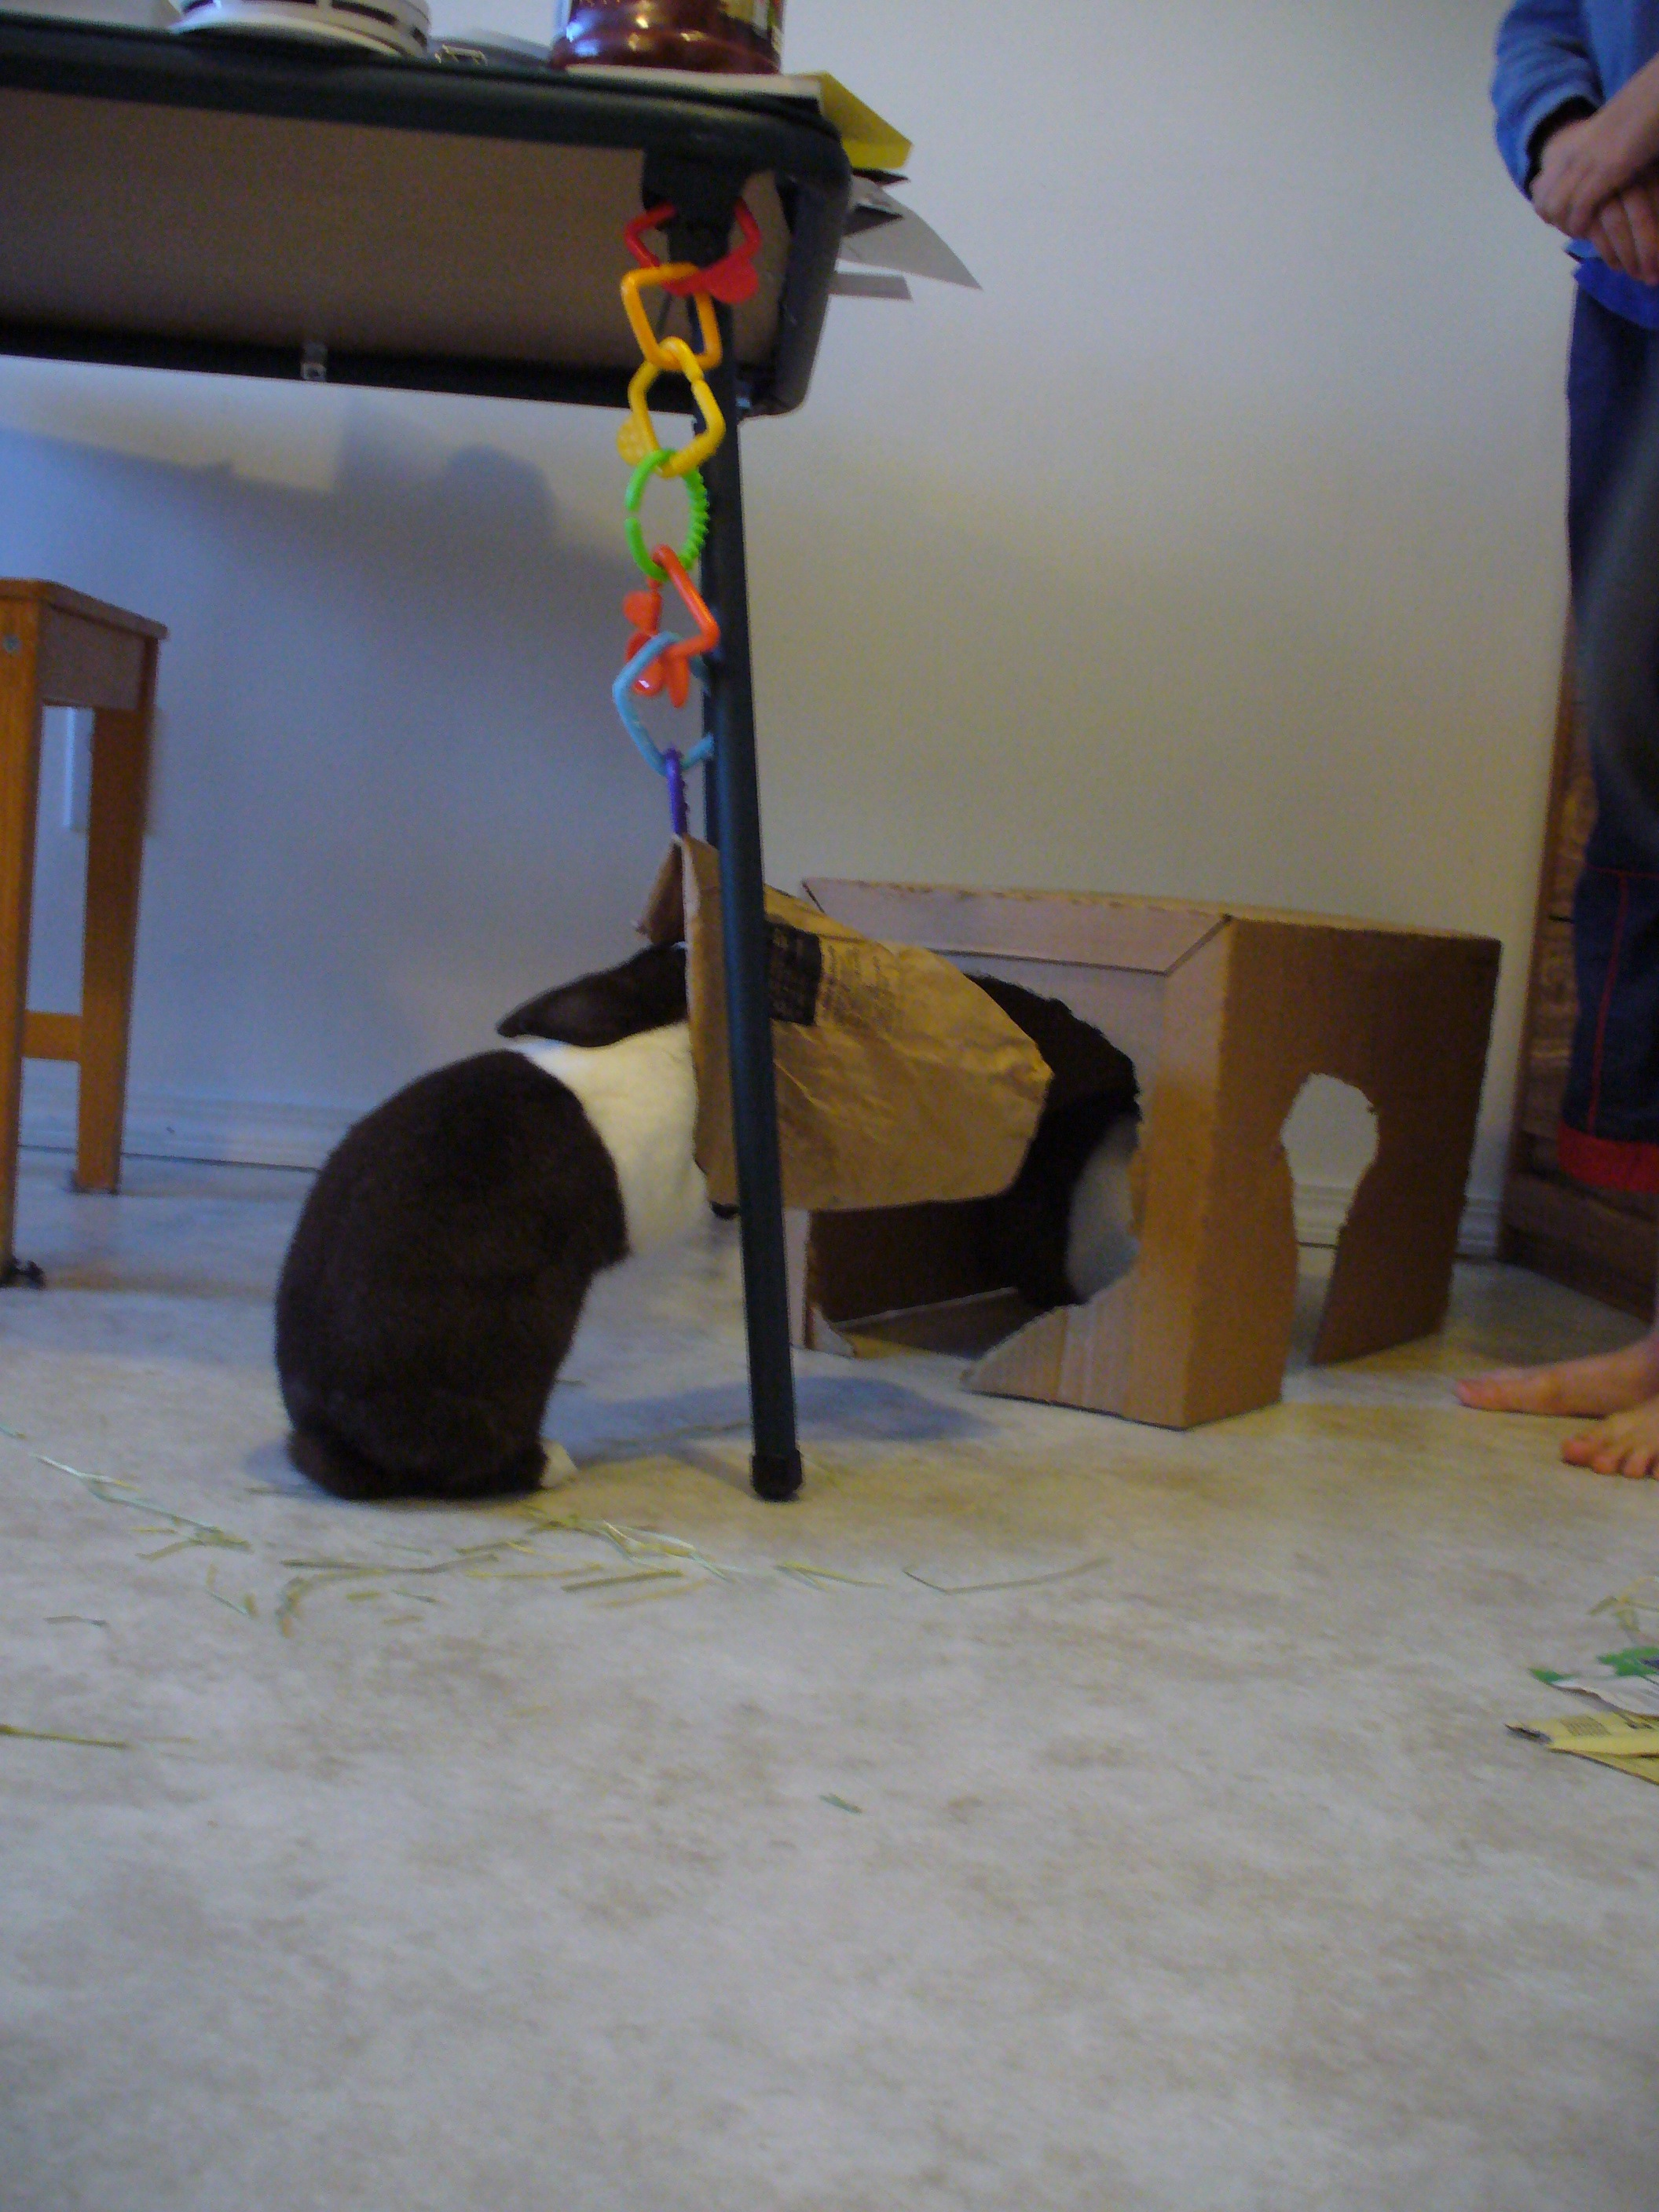 Does That Bag Need a Hay Refill, Bunny? 1